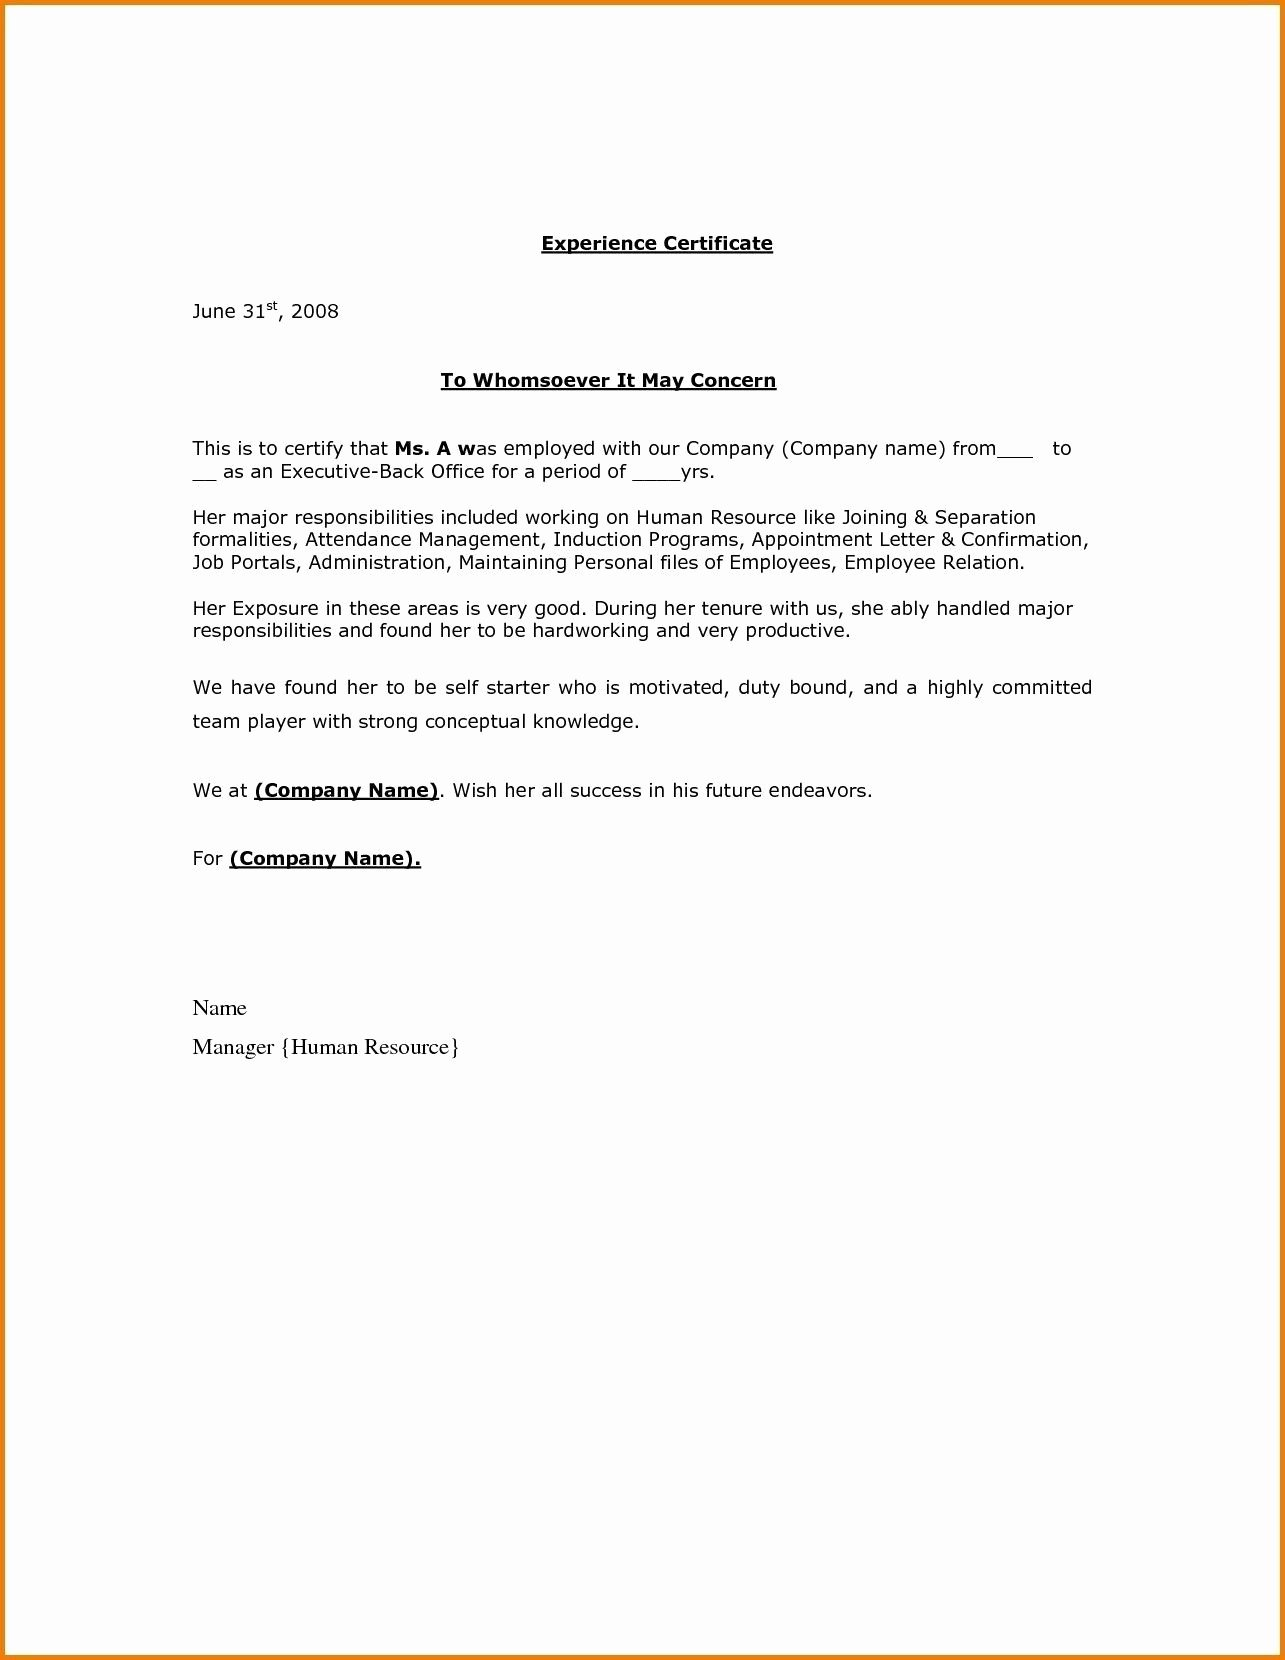 Certificate Of Employment Doc Elegant Relieving Letter format Doc Fresh Certificate